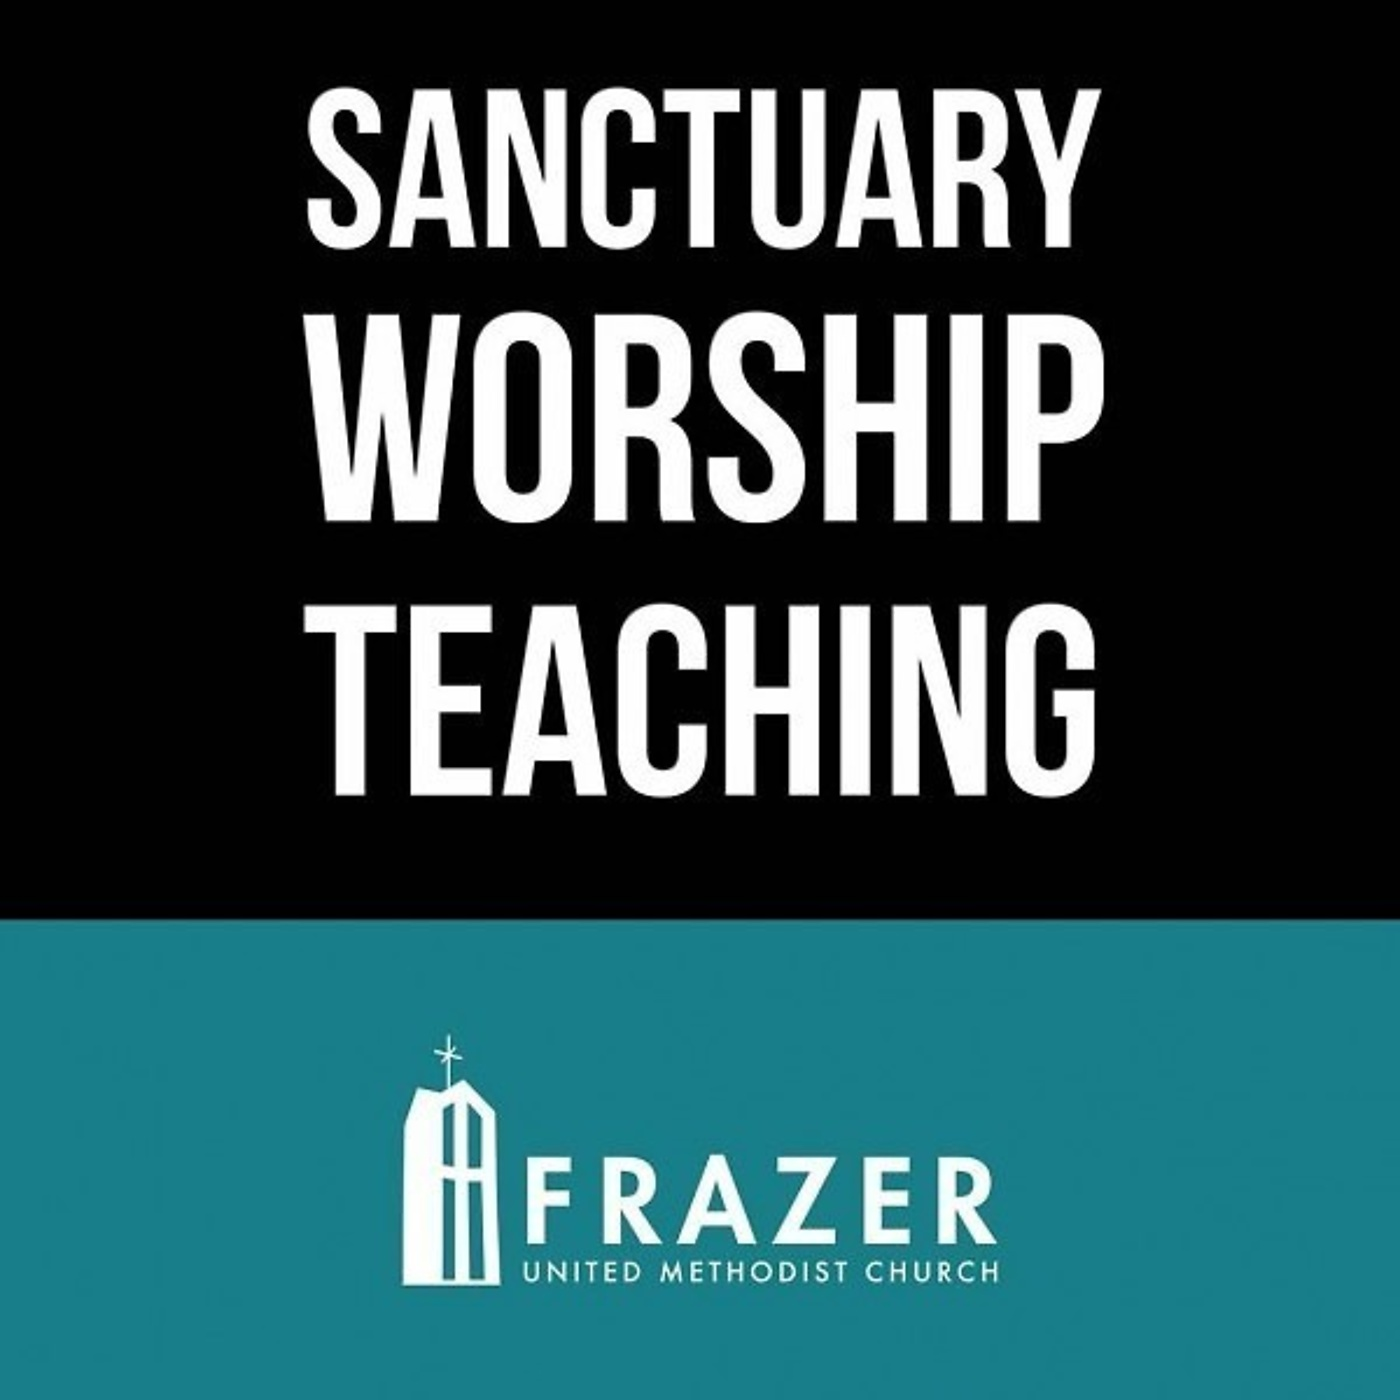 Frazer UMC: Sanctuary Message Podcast (audio)